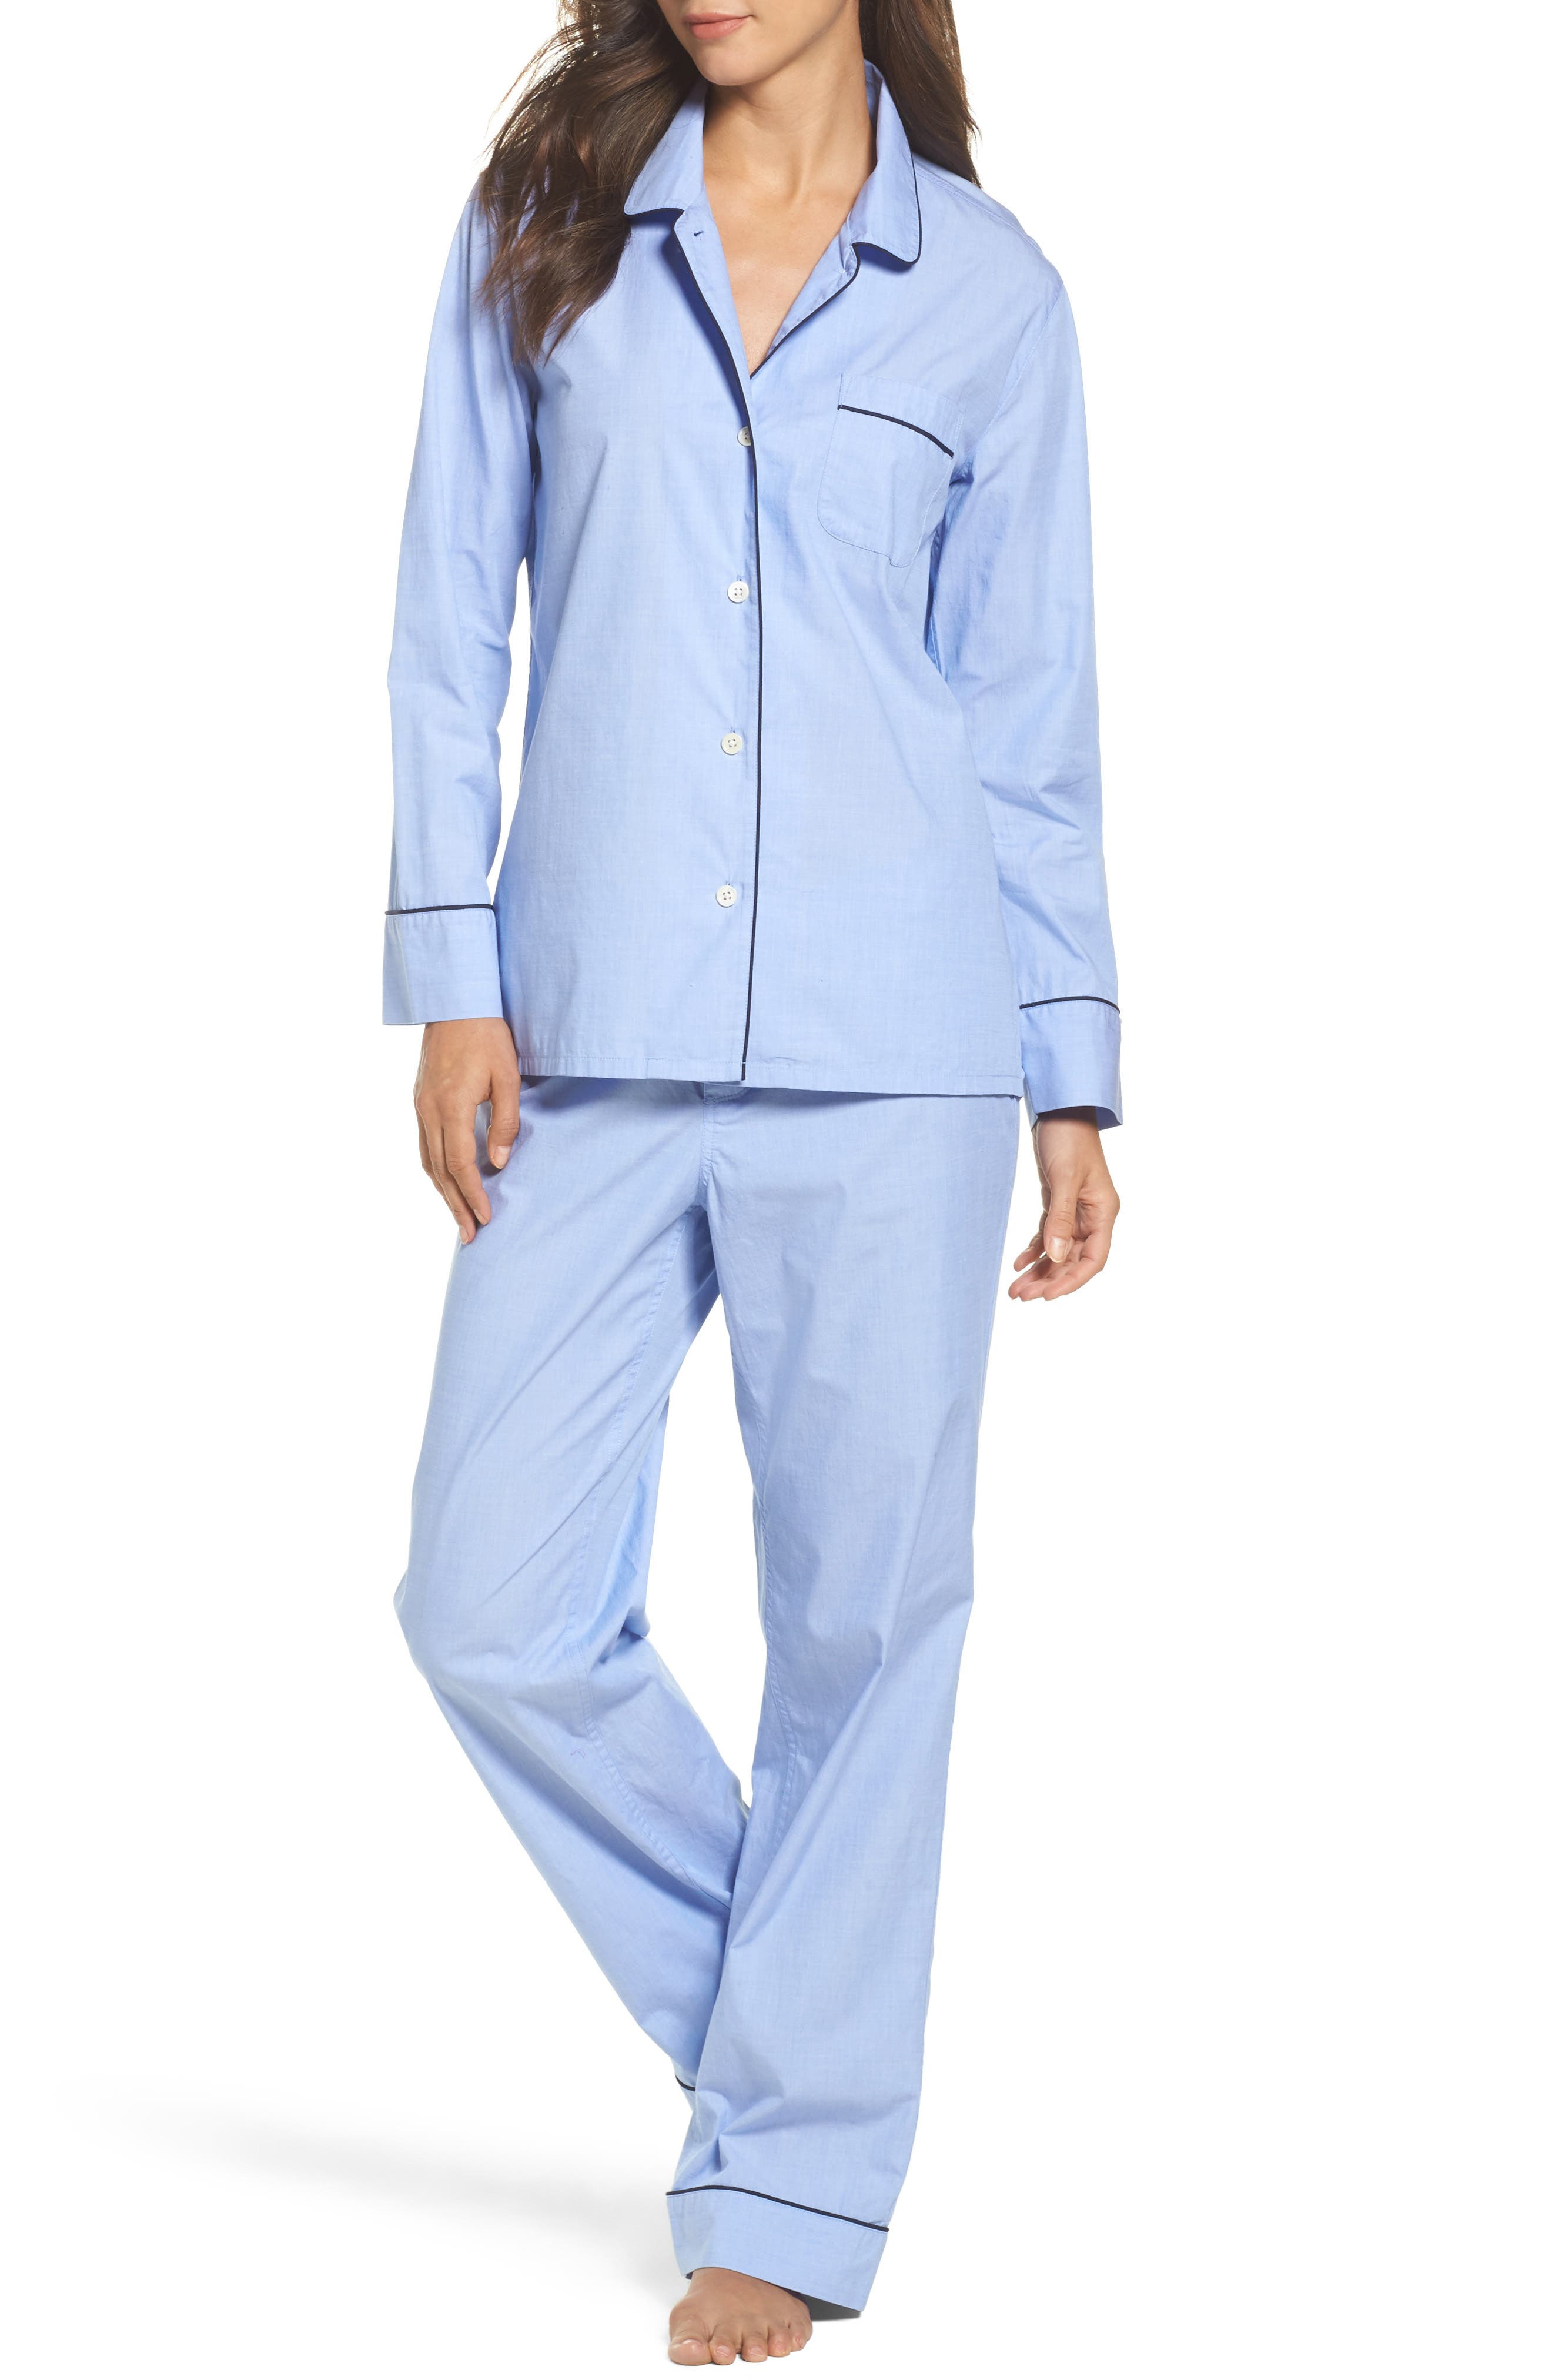 J.Crew Vintage Cotton Pajamas,                             Main thumbnail 1, color,                             Hydrangea